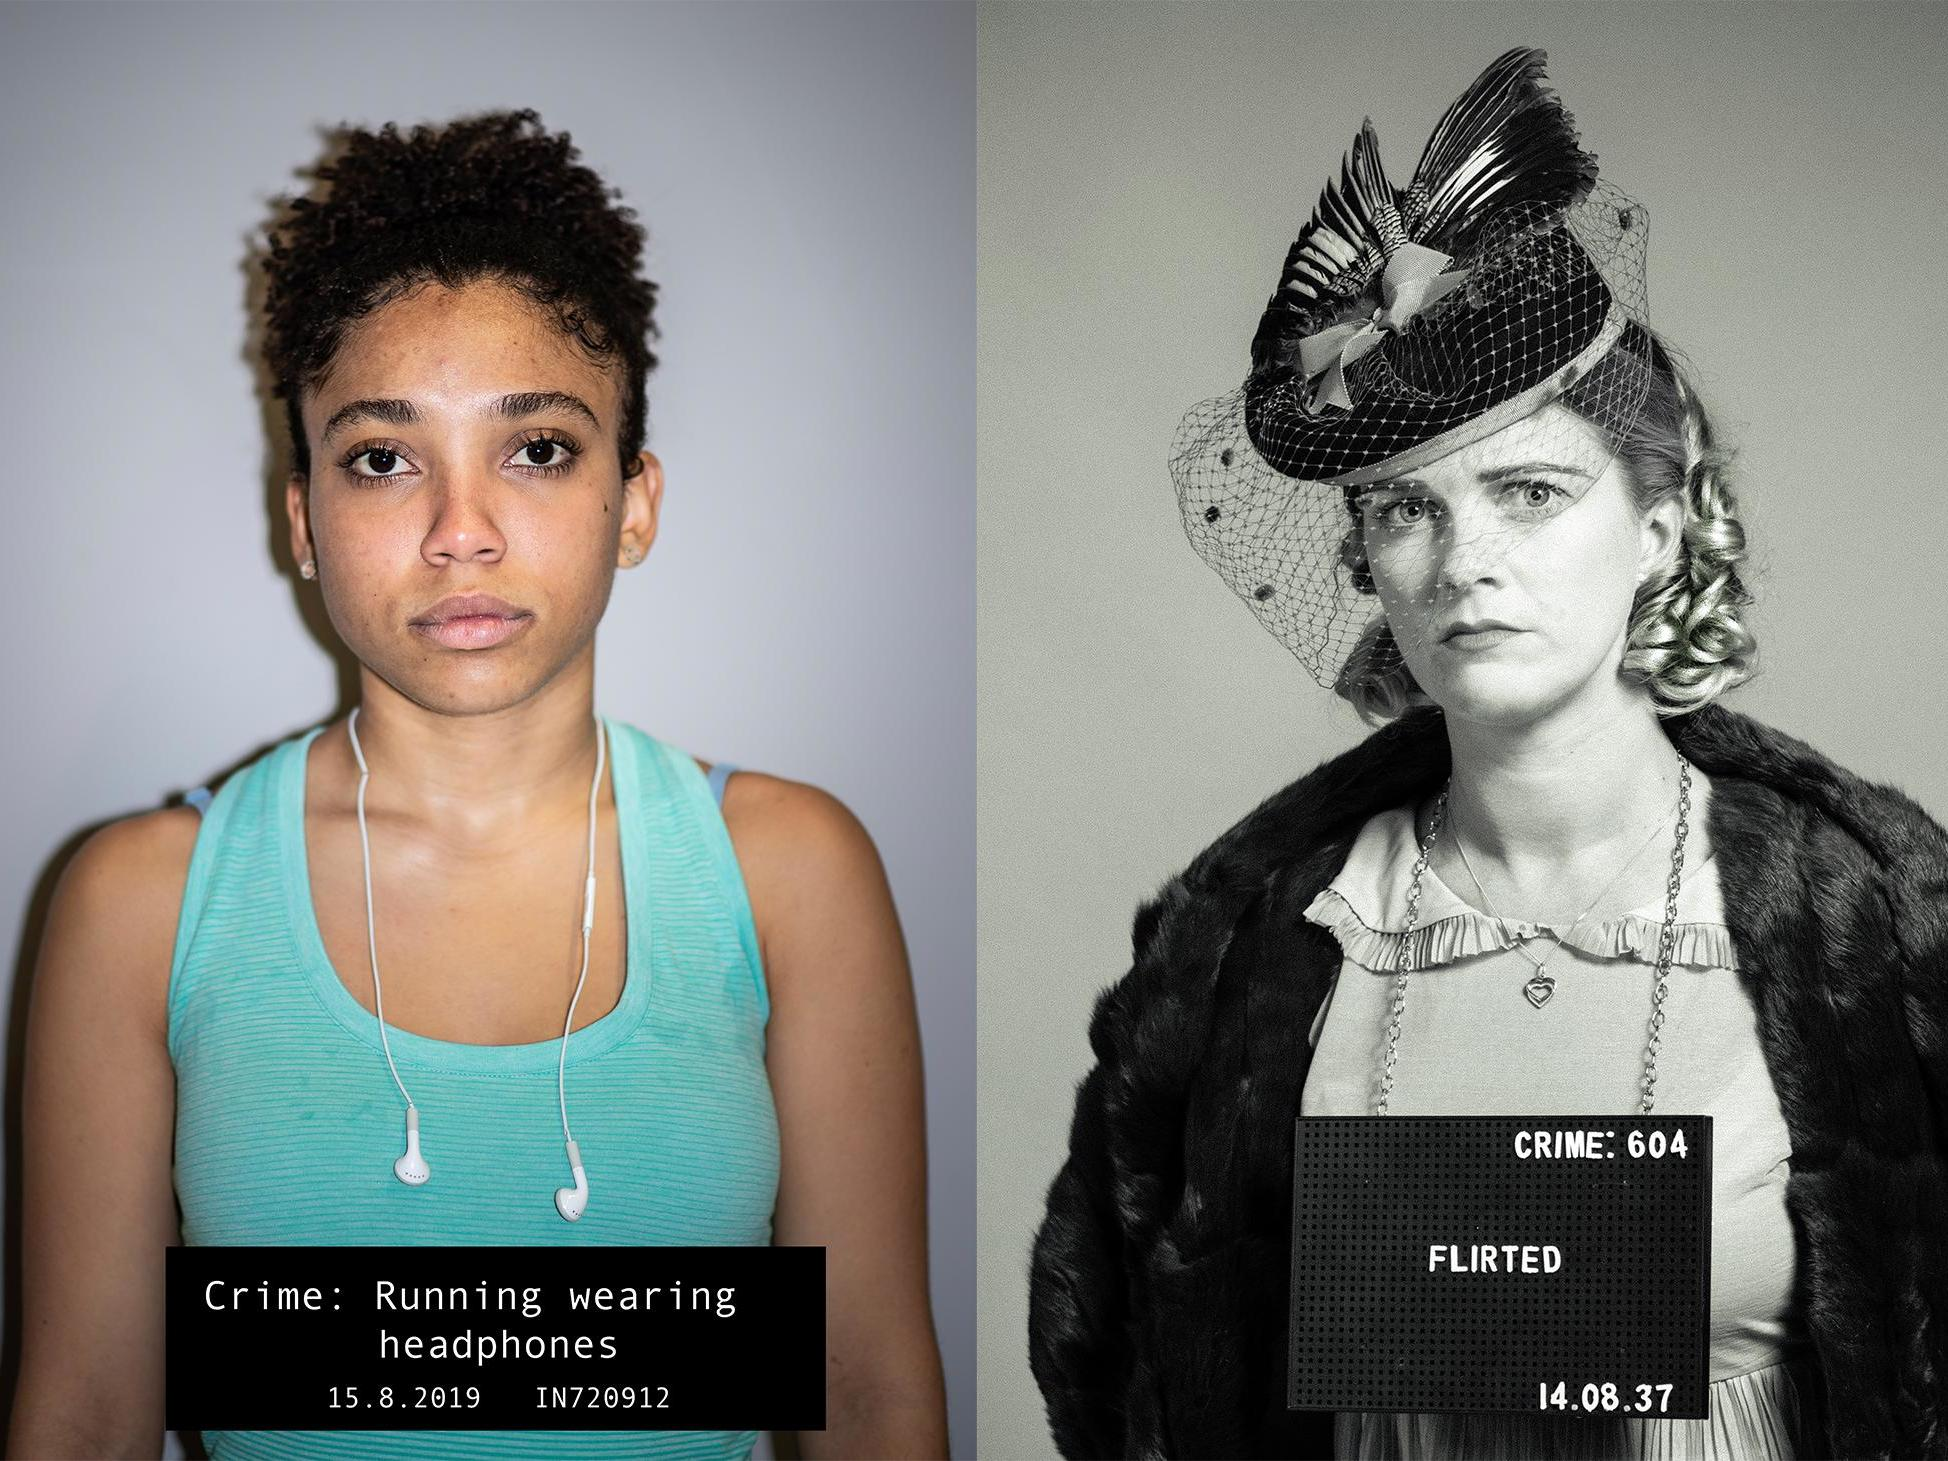 Photographer challenges culture of victim-blaming in sexual assault cases